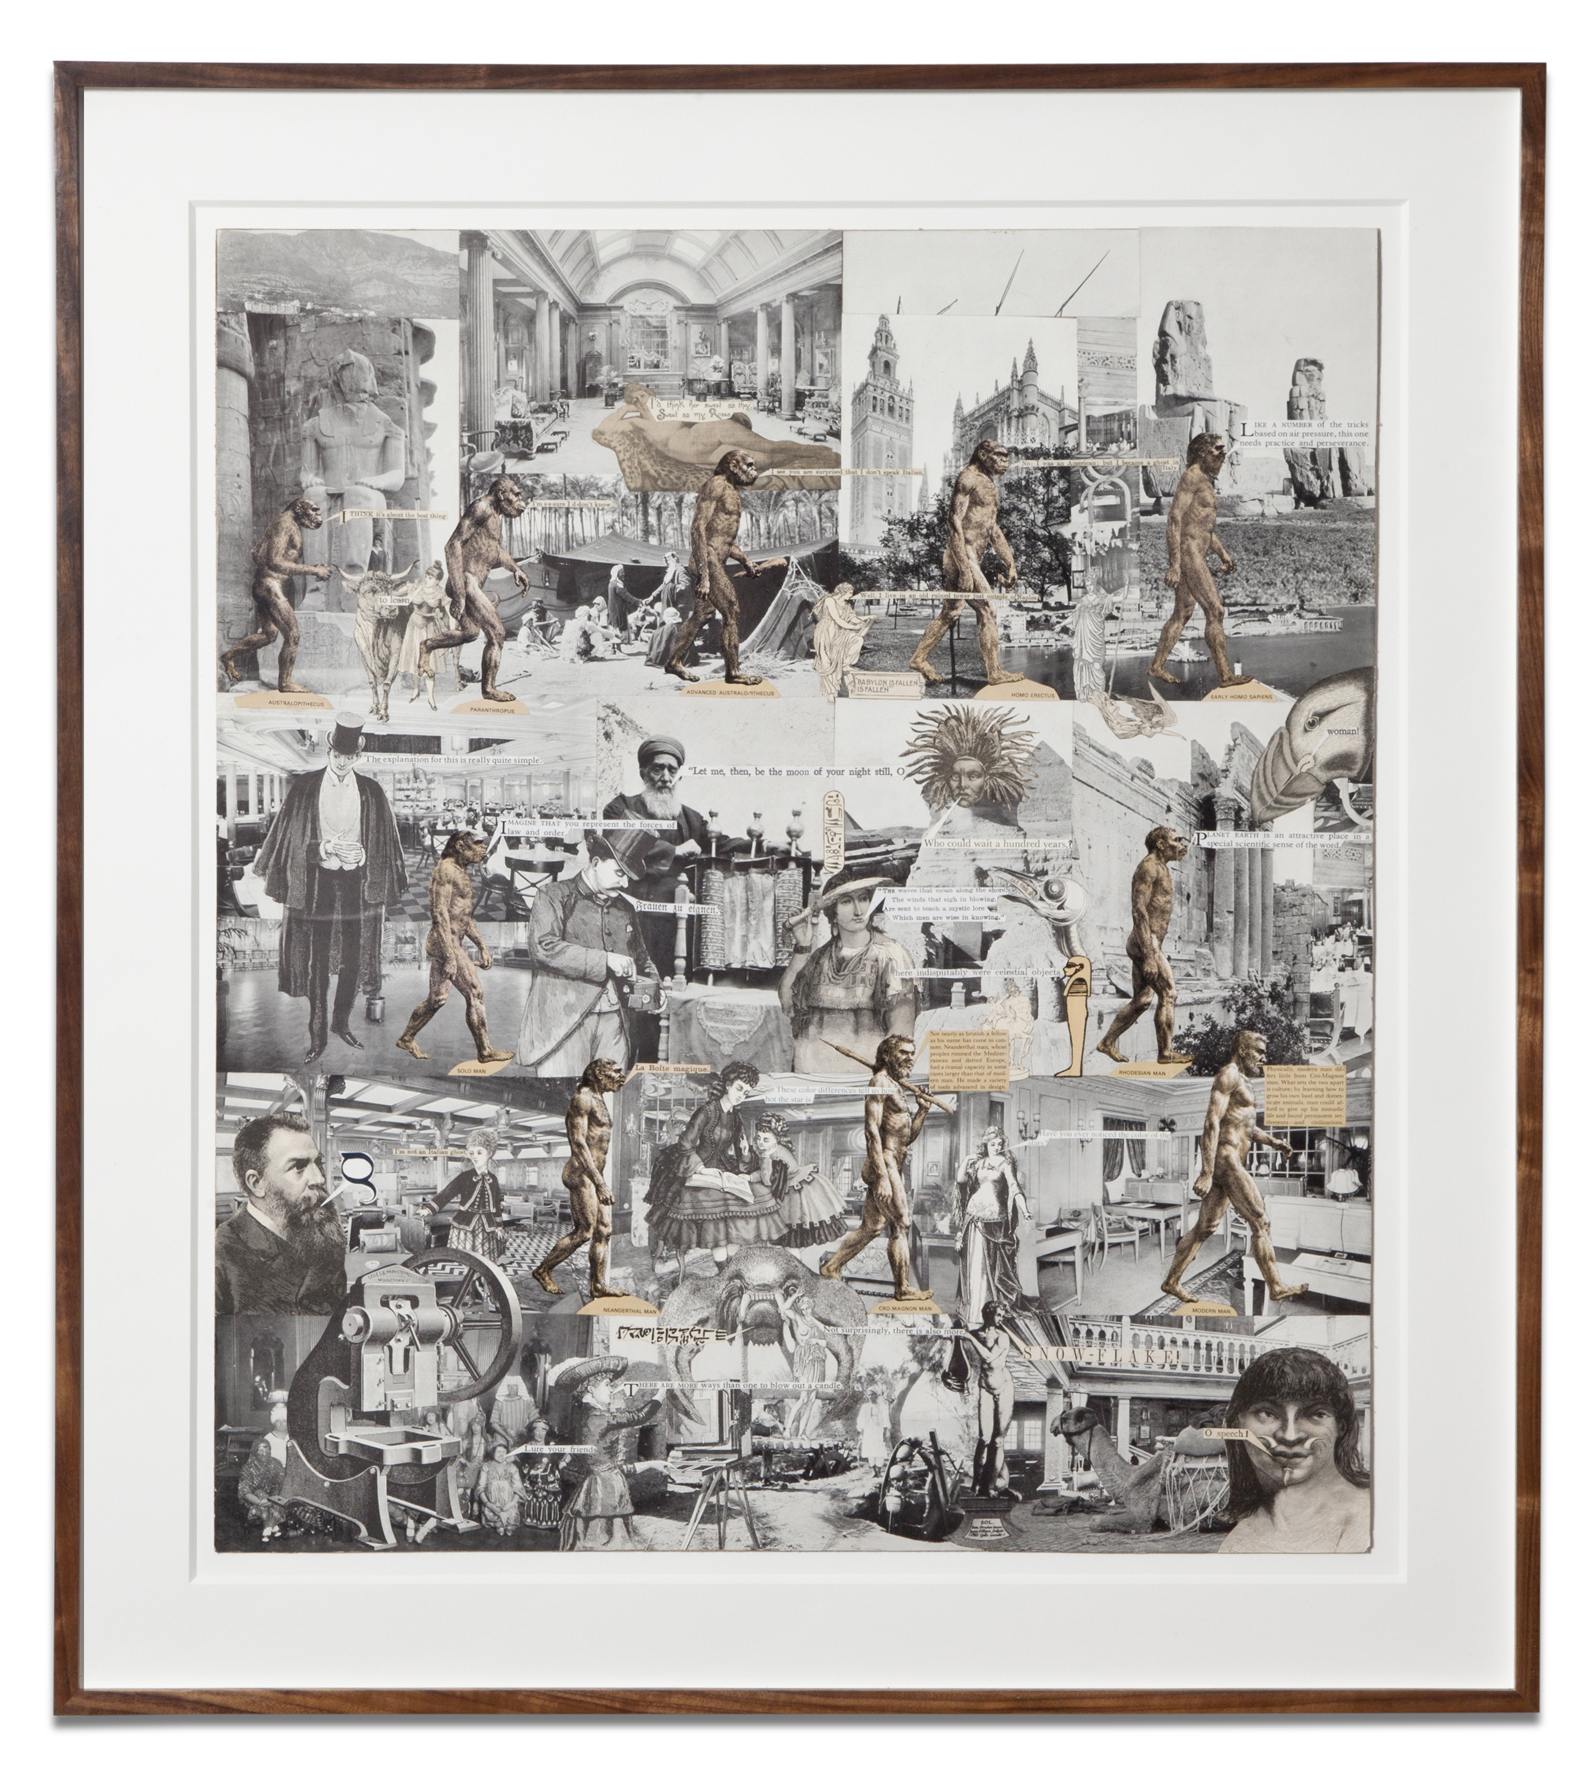 Lawrence Jordan, HISTORY OF MAN, 2012, collage, 26 X 23 inches